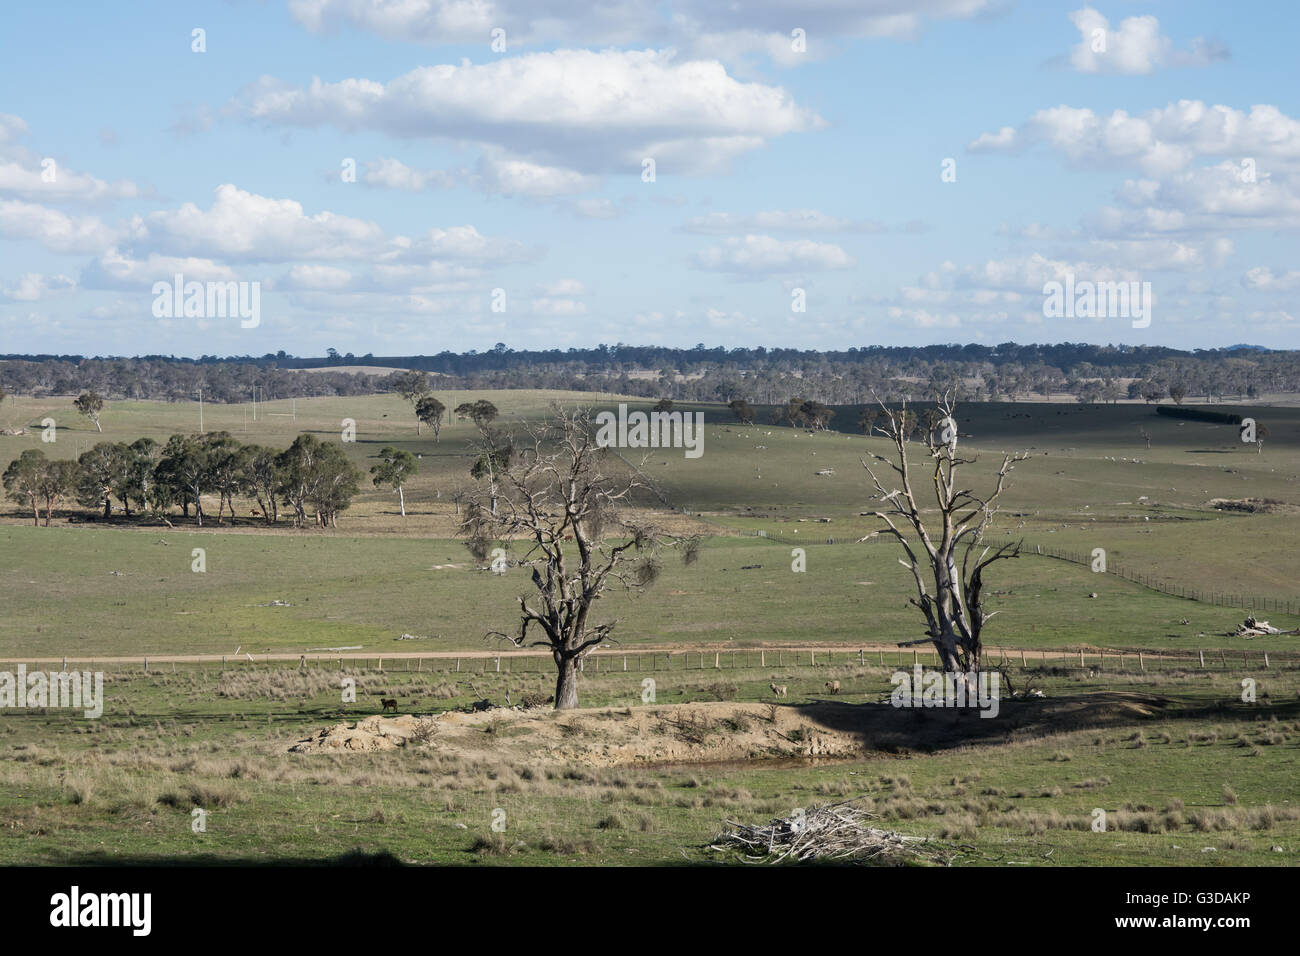 Hilltop View over pastoral scene of Sheep Country in NSW  Northern Tablelands. - Stock Image